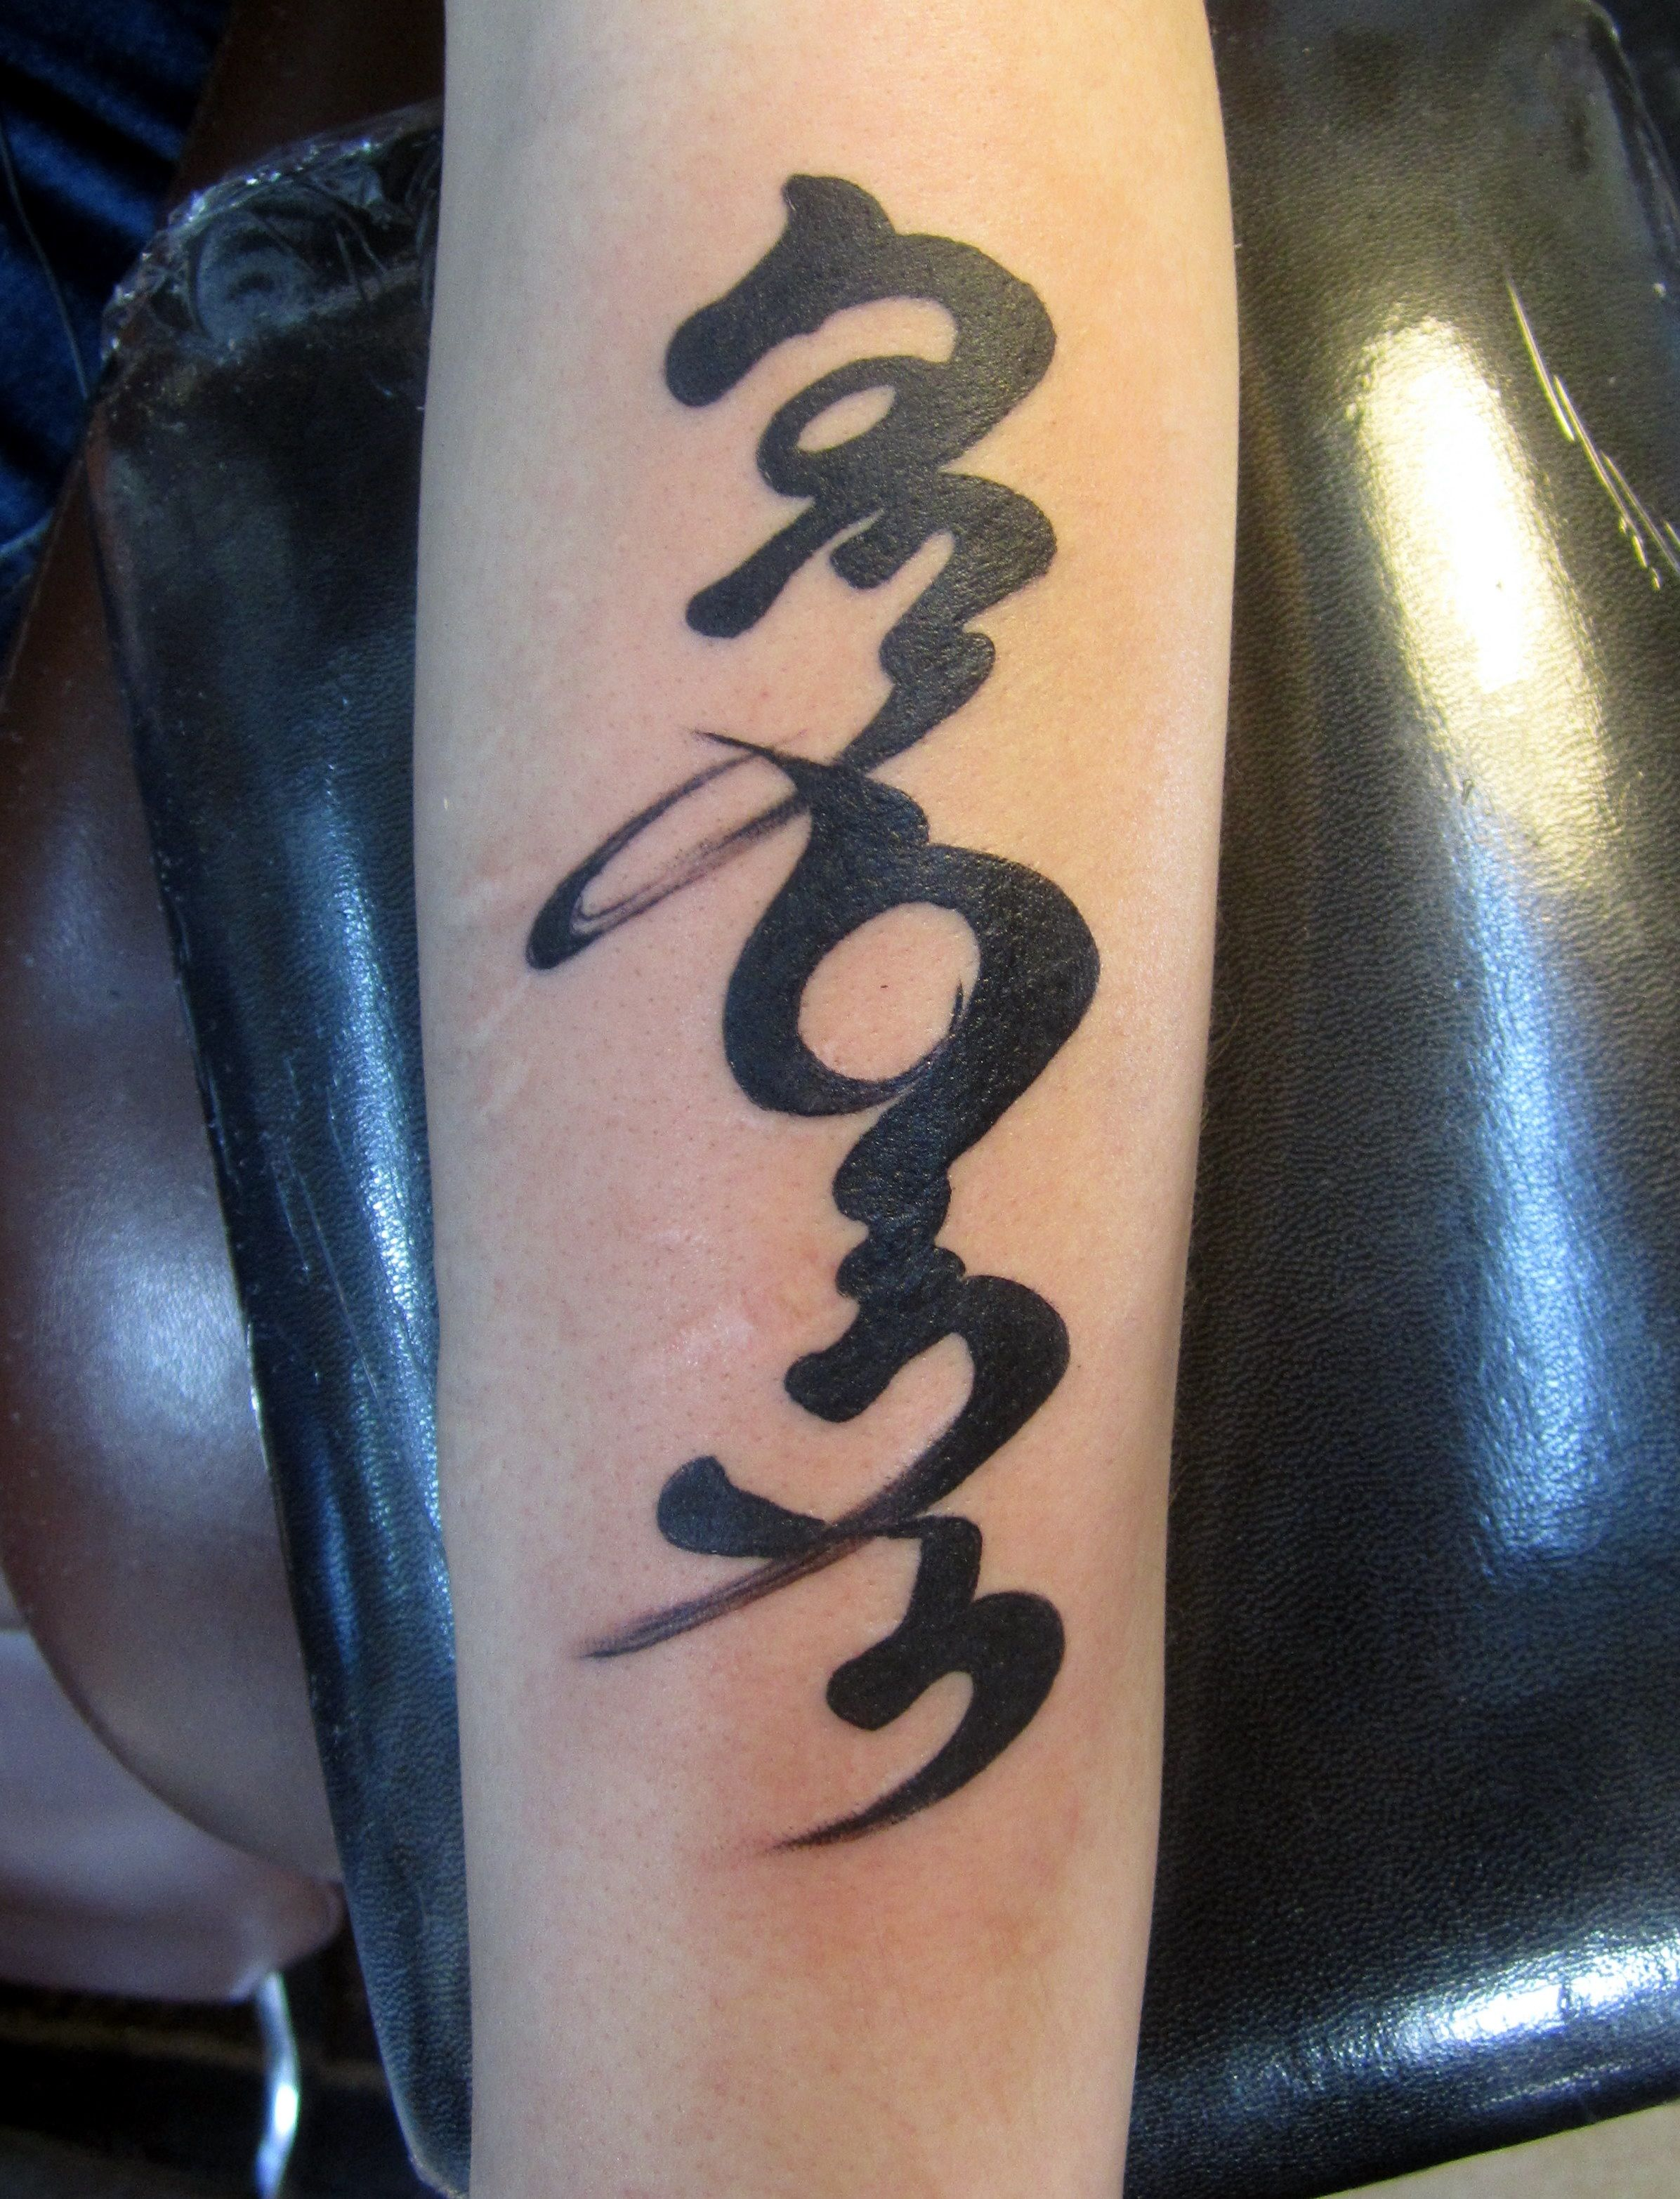 Best Calligraphy Tattoo Blue Sky Mongolian Calligraphy Tattoo Inks That Don T Stink